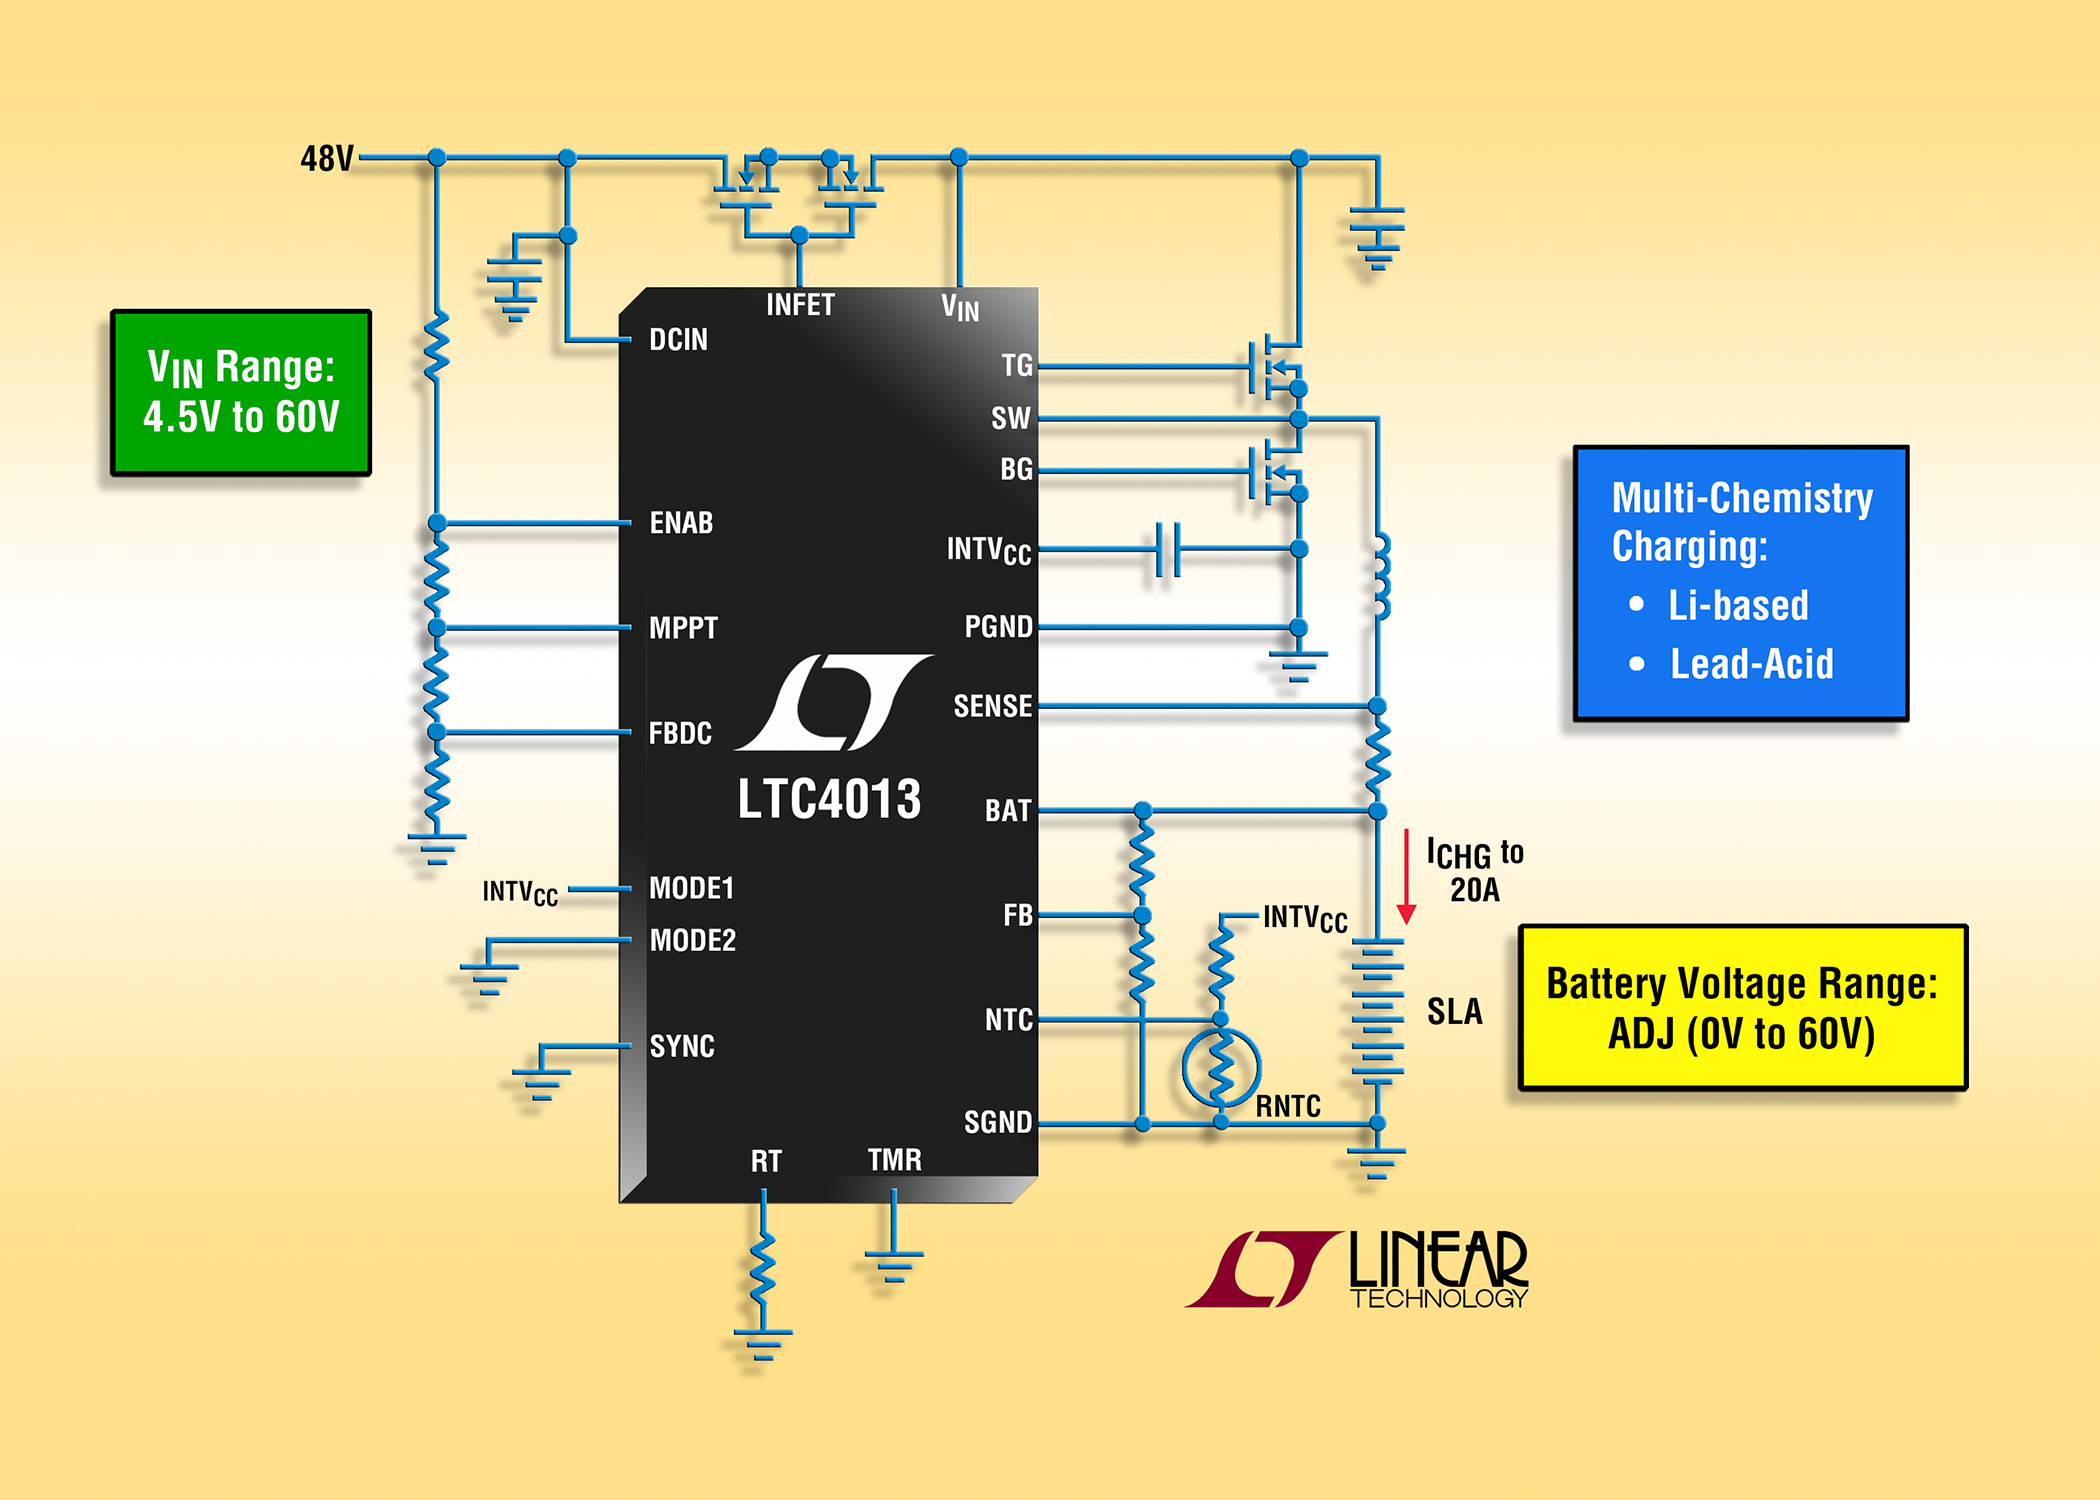 60v synchronous buck battery charger includes lead acid li ion charge algorithms for up to 20a charge current [ 2100 x 1500 Pixel ]